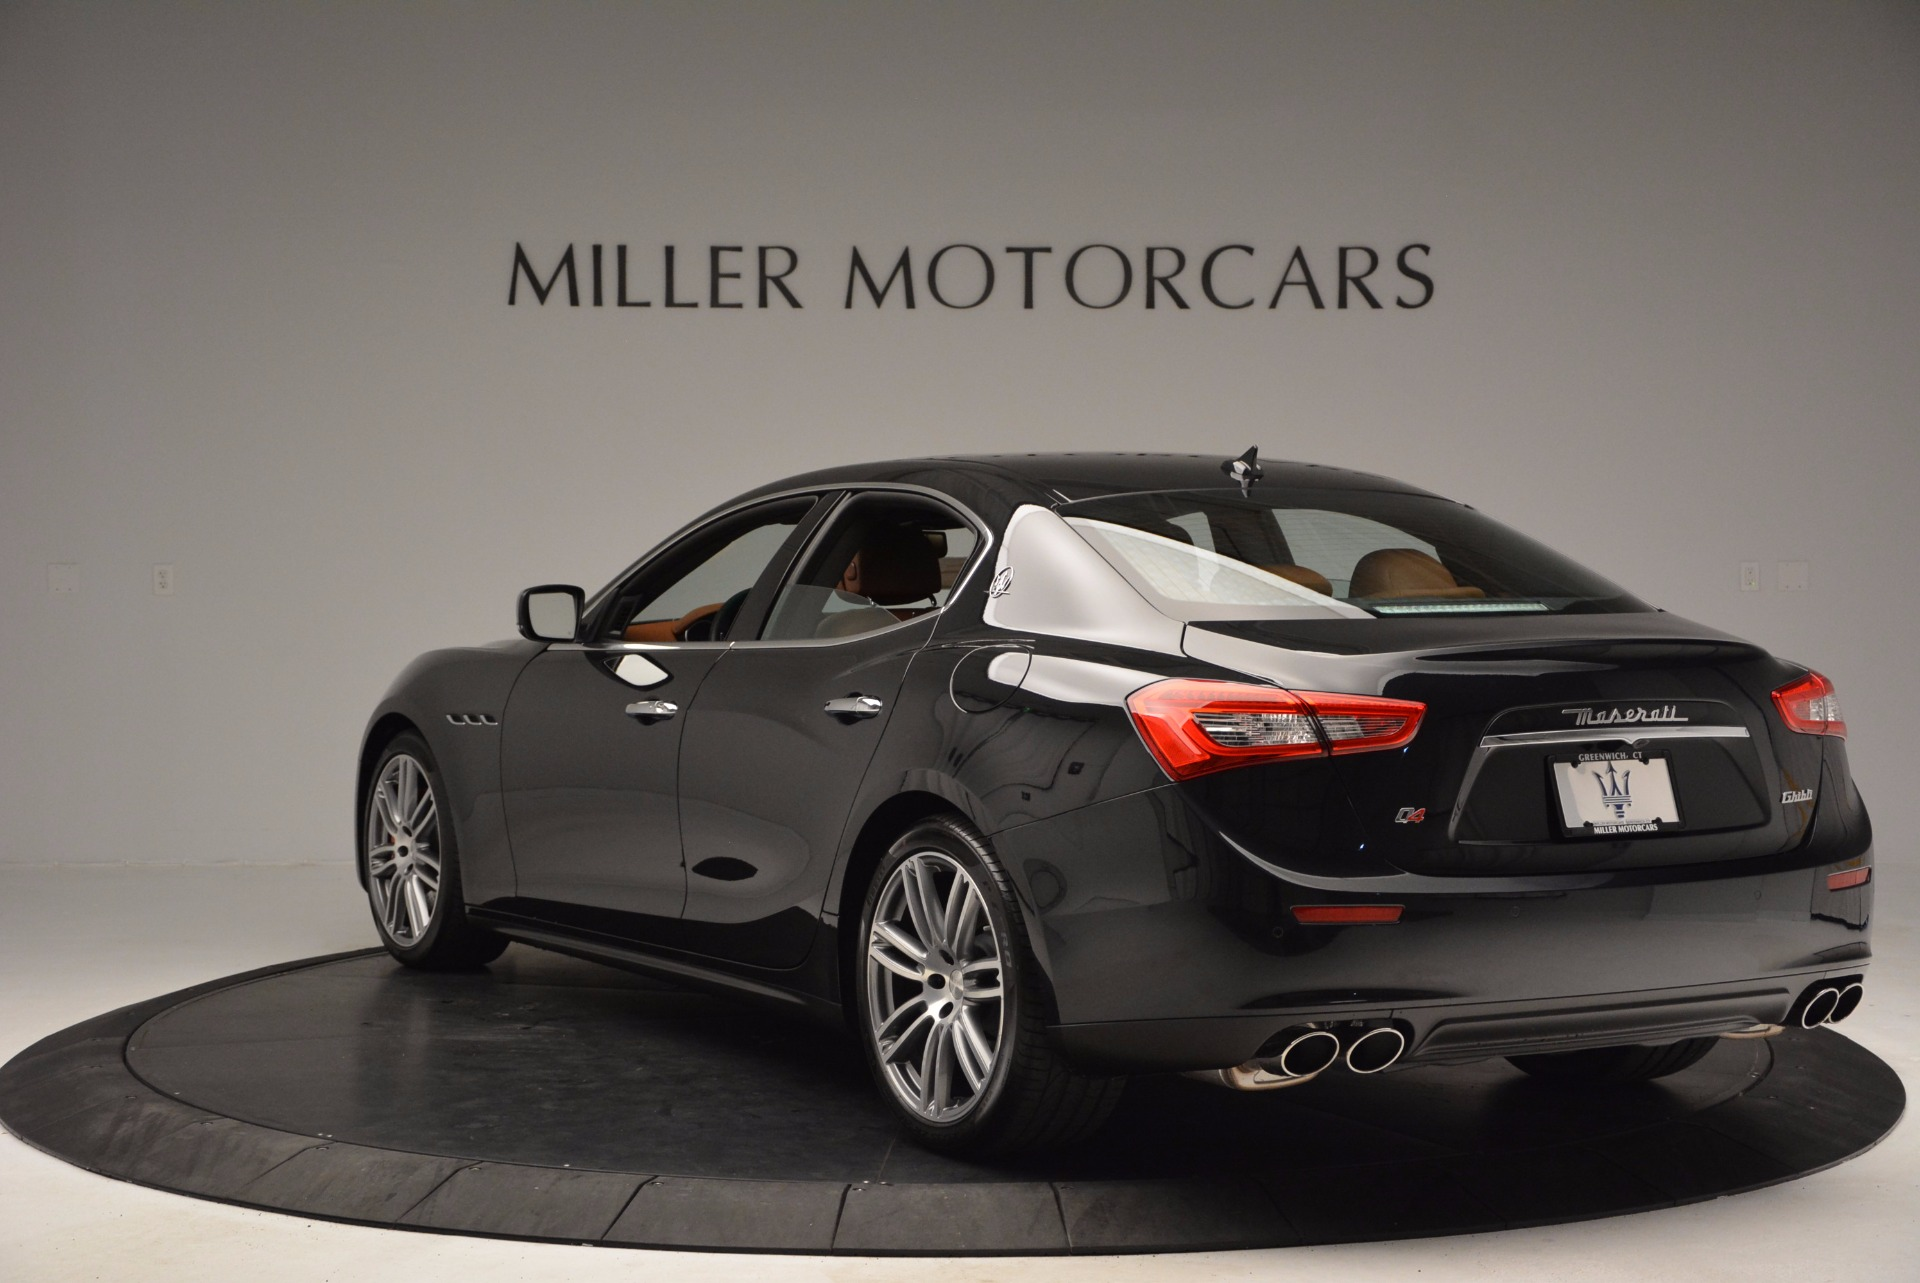 Used 2014 Maserati Ghibli S Q4 For Sale In Greenwich, CT. Alfa Romeo of Greenwich, 7281 1587_p5